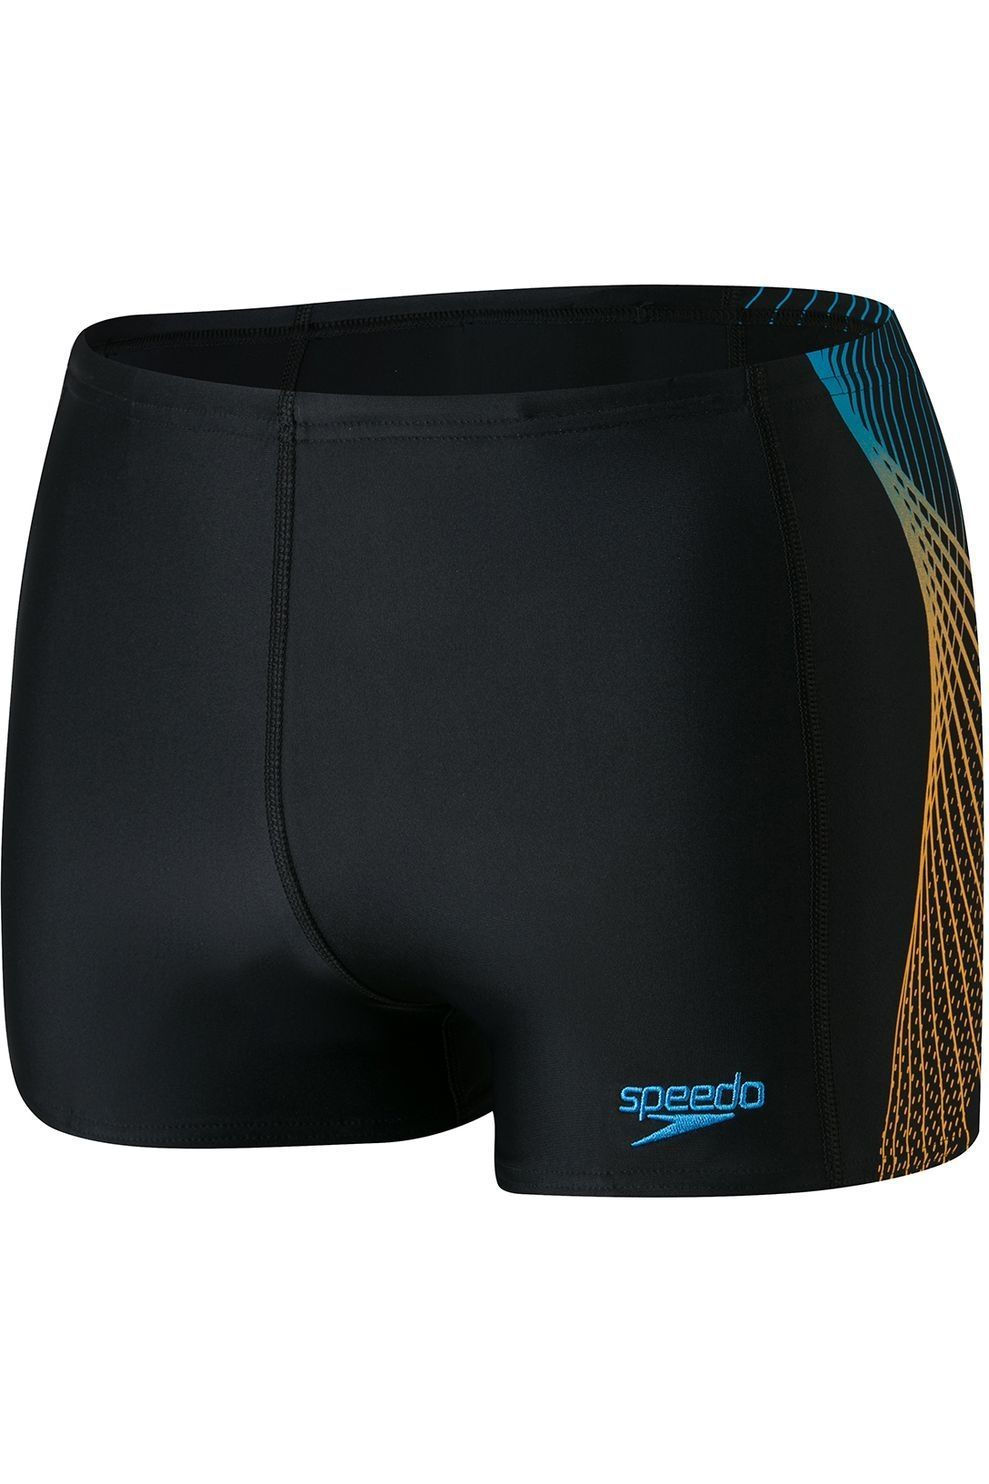 Speedo Slip E10 Placement Panel Aquashort voor heren - Blauw/Oranje - Maten: 32, 34, 36, 38